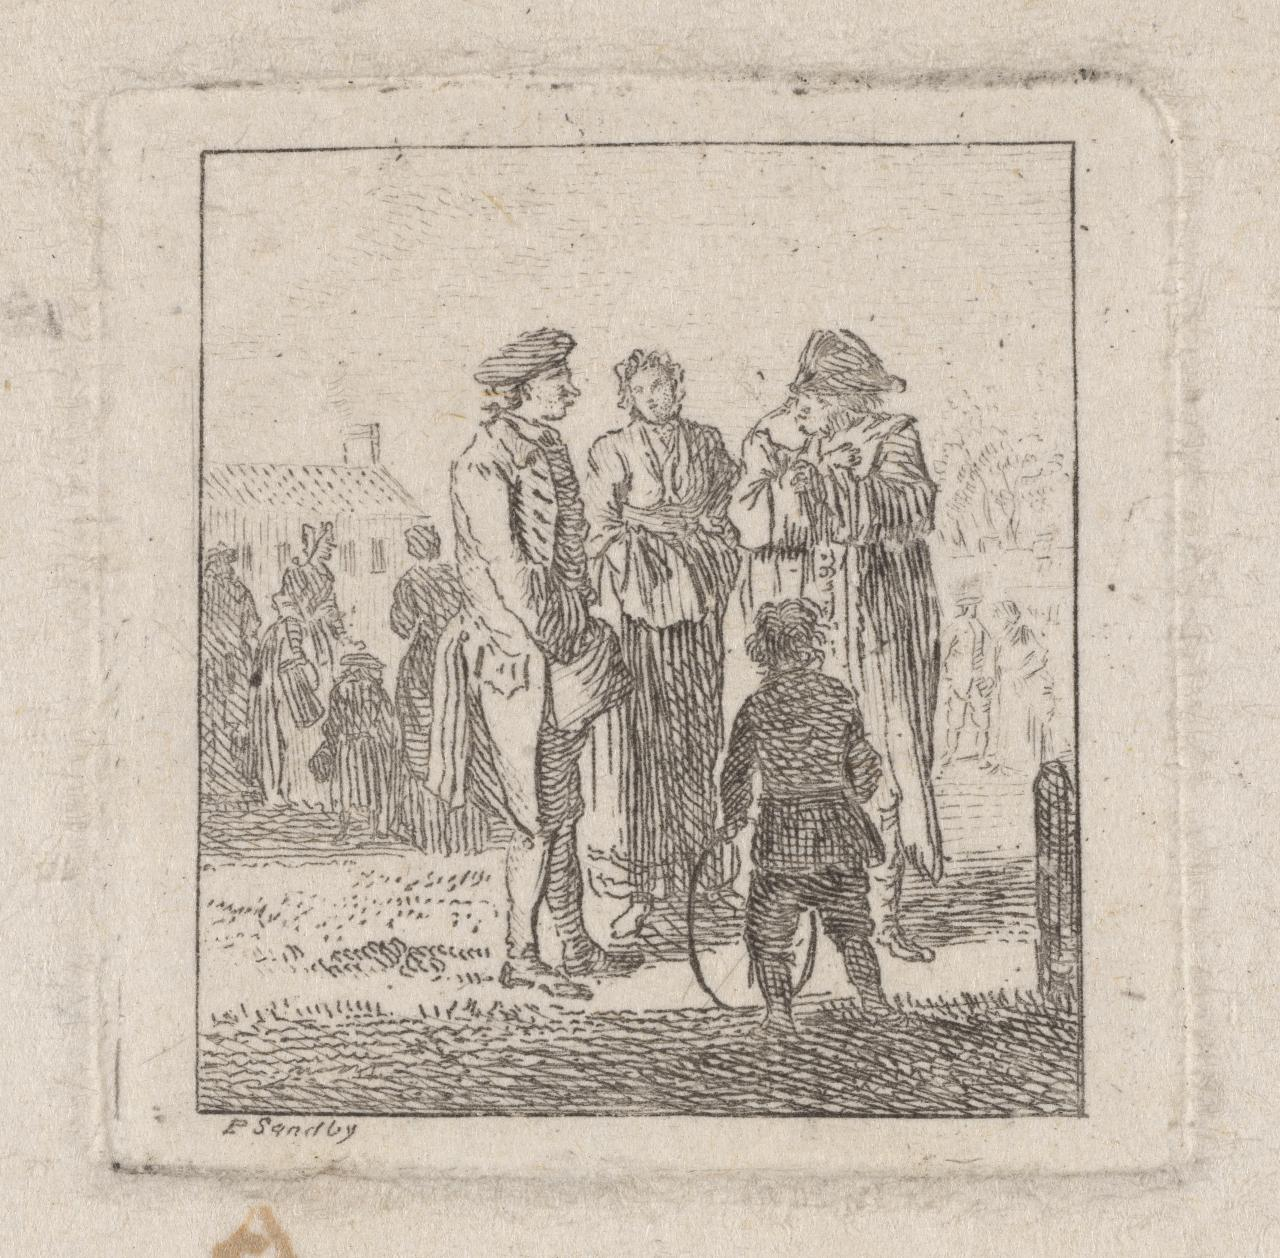 Group of three adults and a child with a hoop